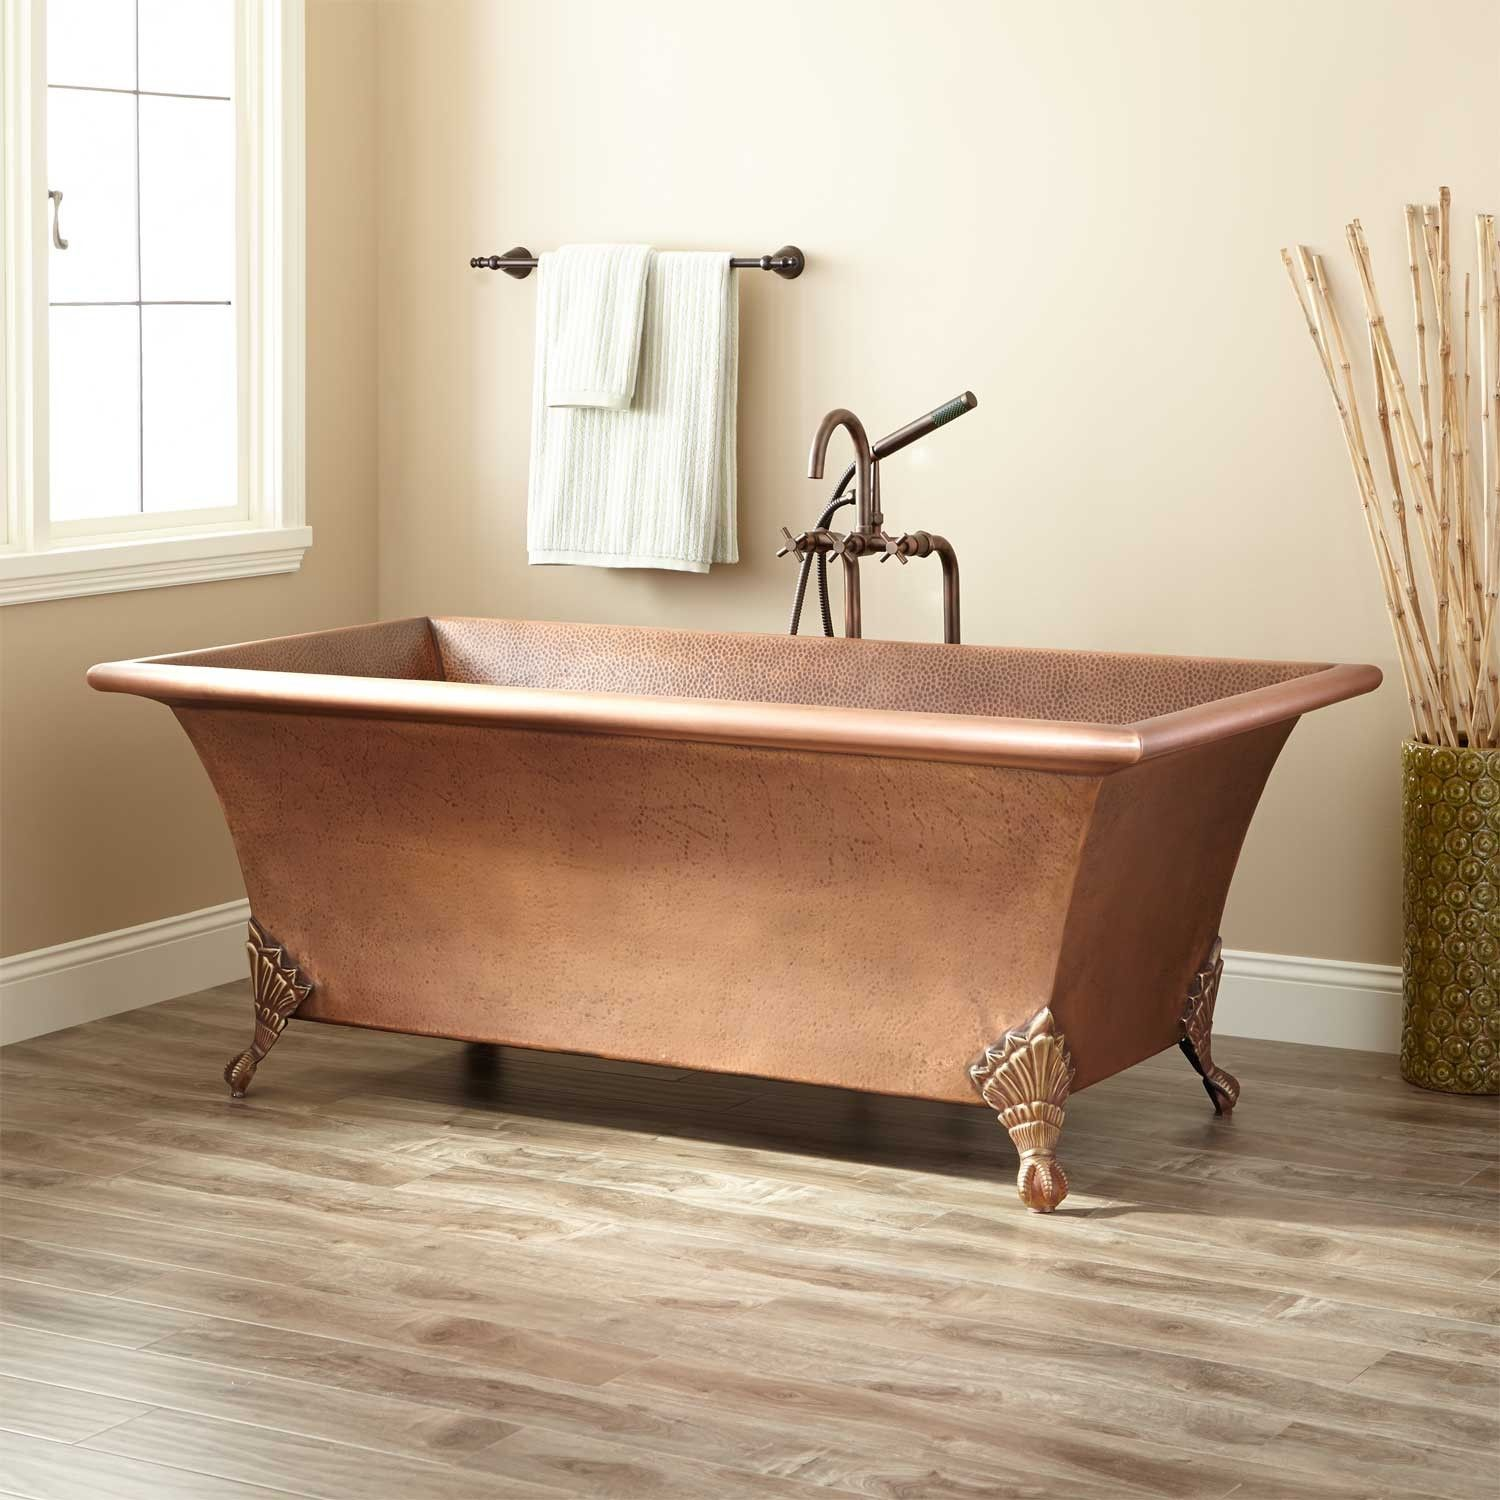 65 Crawford Hammered Copper Clawfoot Tub In 2019 Bathrooms